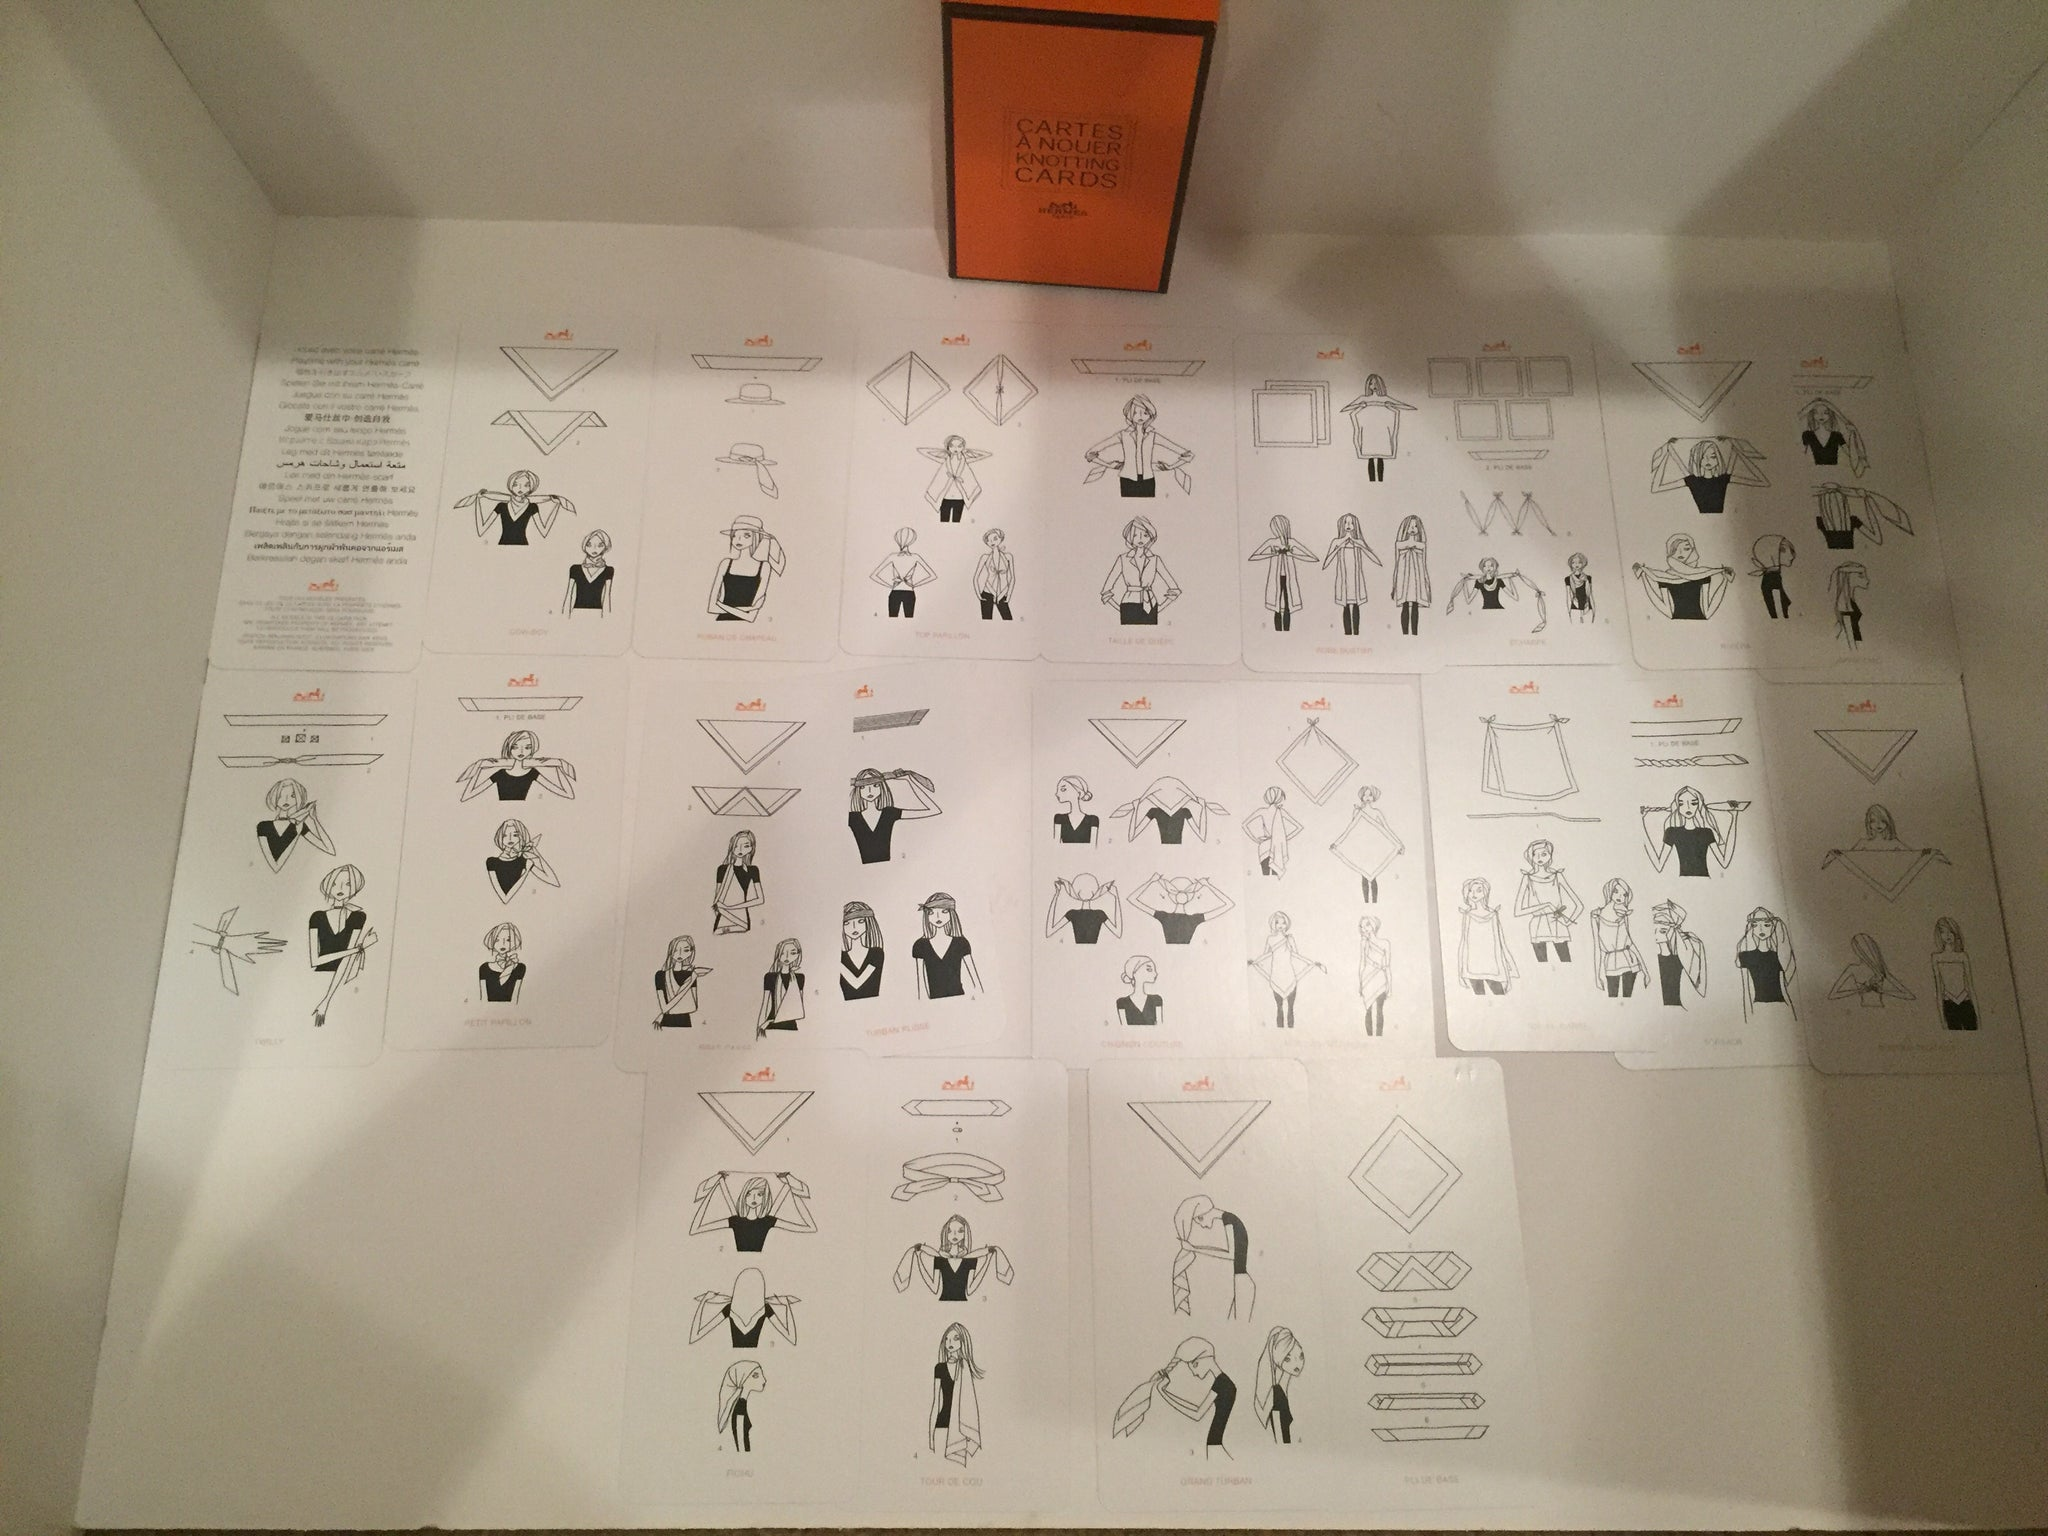 New In Box Authentic Hermes Scarf Knotting Cards Blushing Babes Tying Diagram